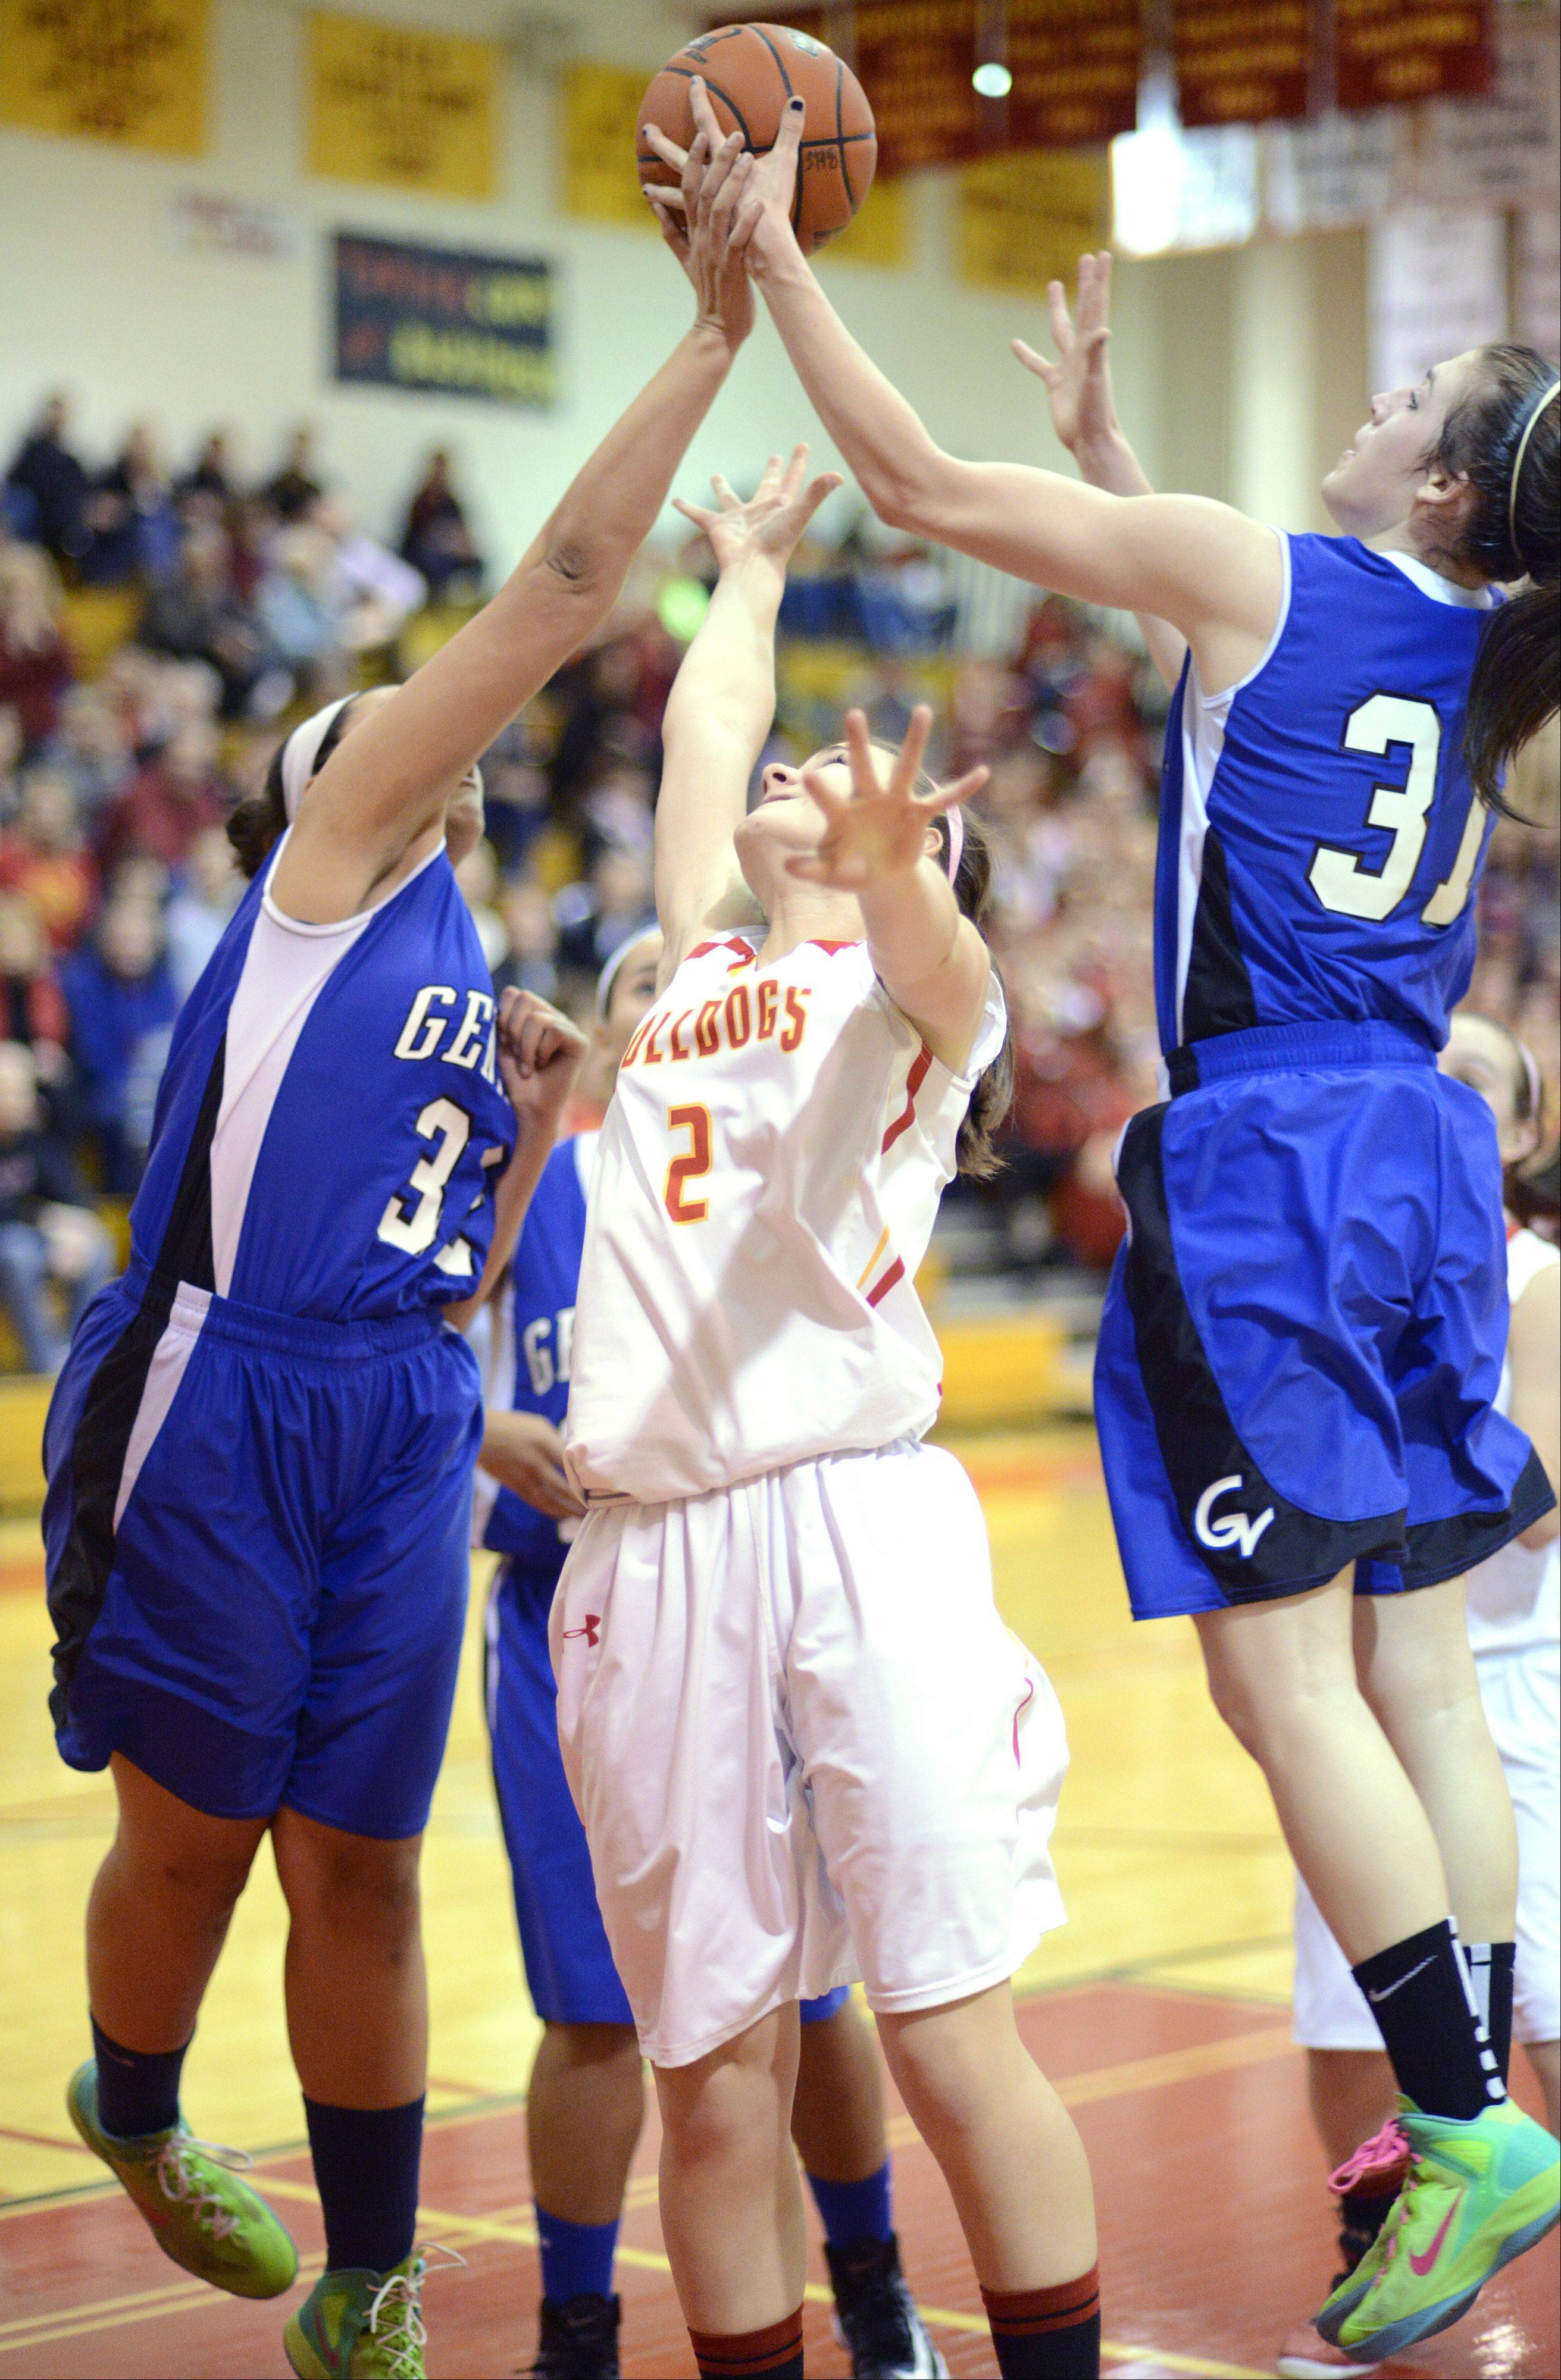 Laura Stoecker/lstoecker@dailyherald.com Geneva's Sidney Santos, left, and Sami Pawlak leap for a rebound keeping it out of reach of Batavia's Grace Andrews in the second quarter on Friday, January 11.